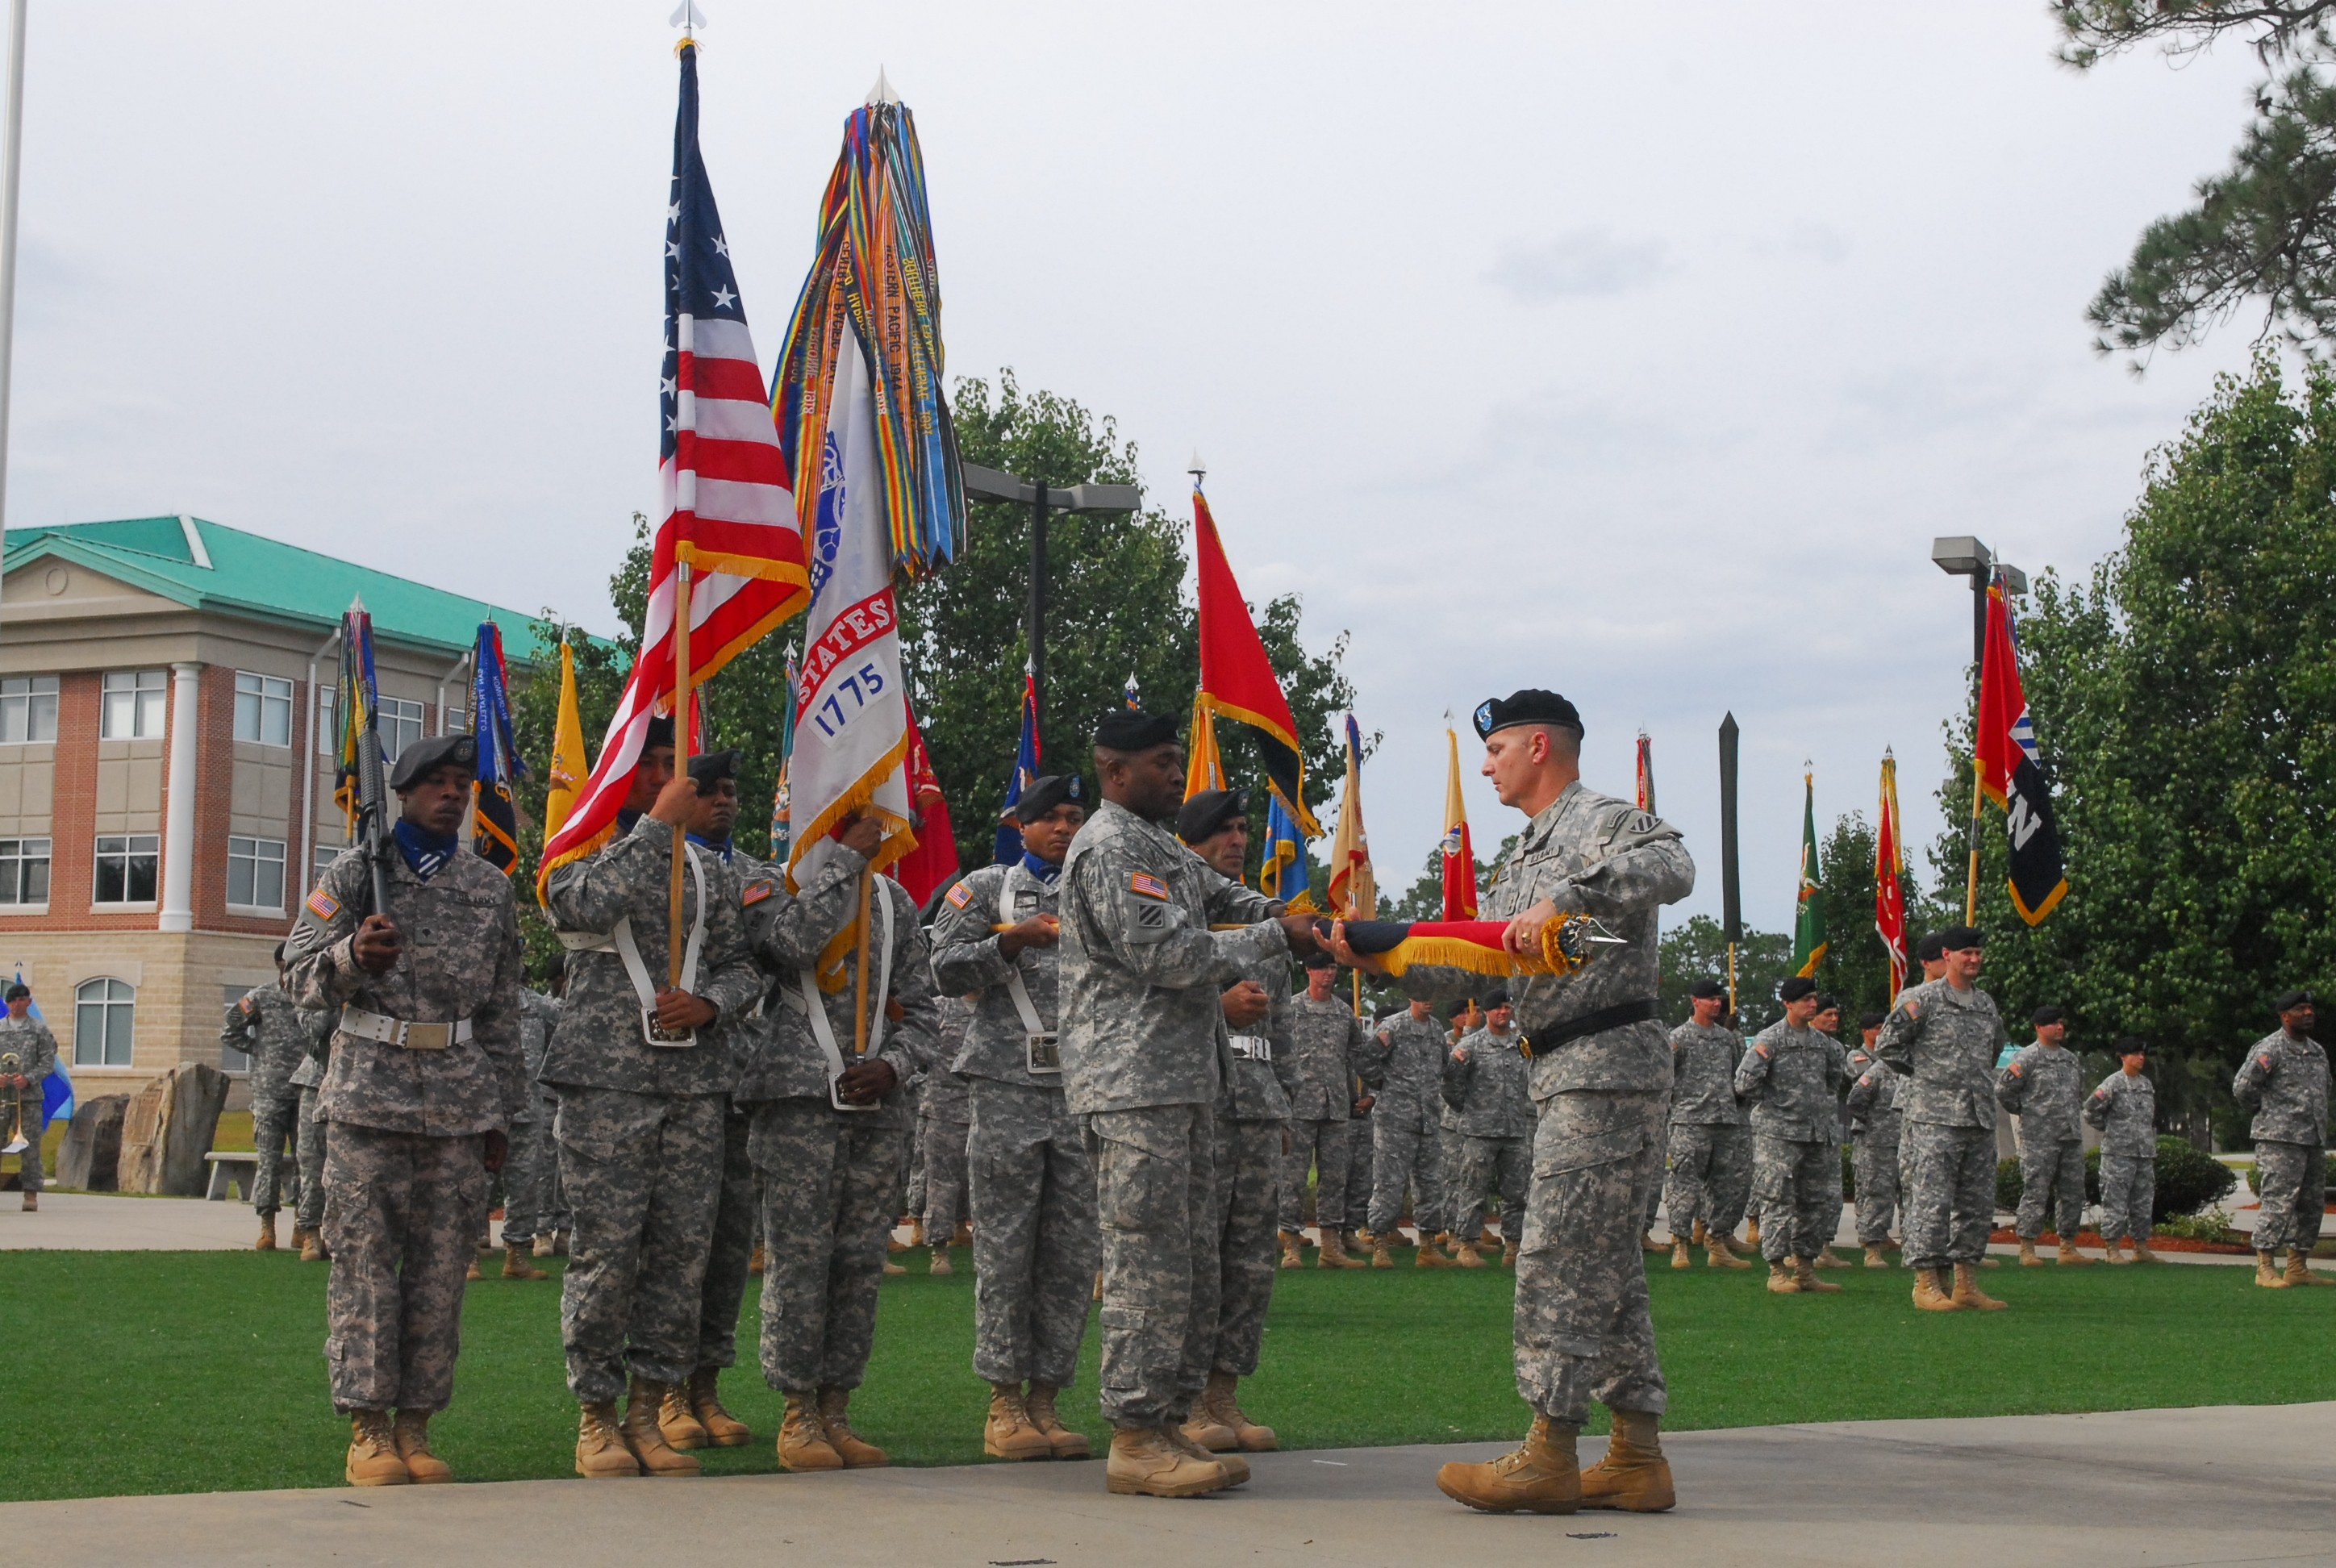 Army color casing ceremony script - The Colors Casing Ceremony Signified The Marne Division S Fourth Deployment To Iraq A Milestone Made By No Other Army Division Photo Credit Staff Sgt